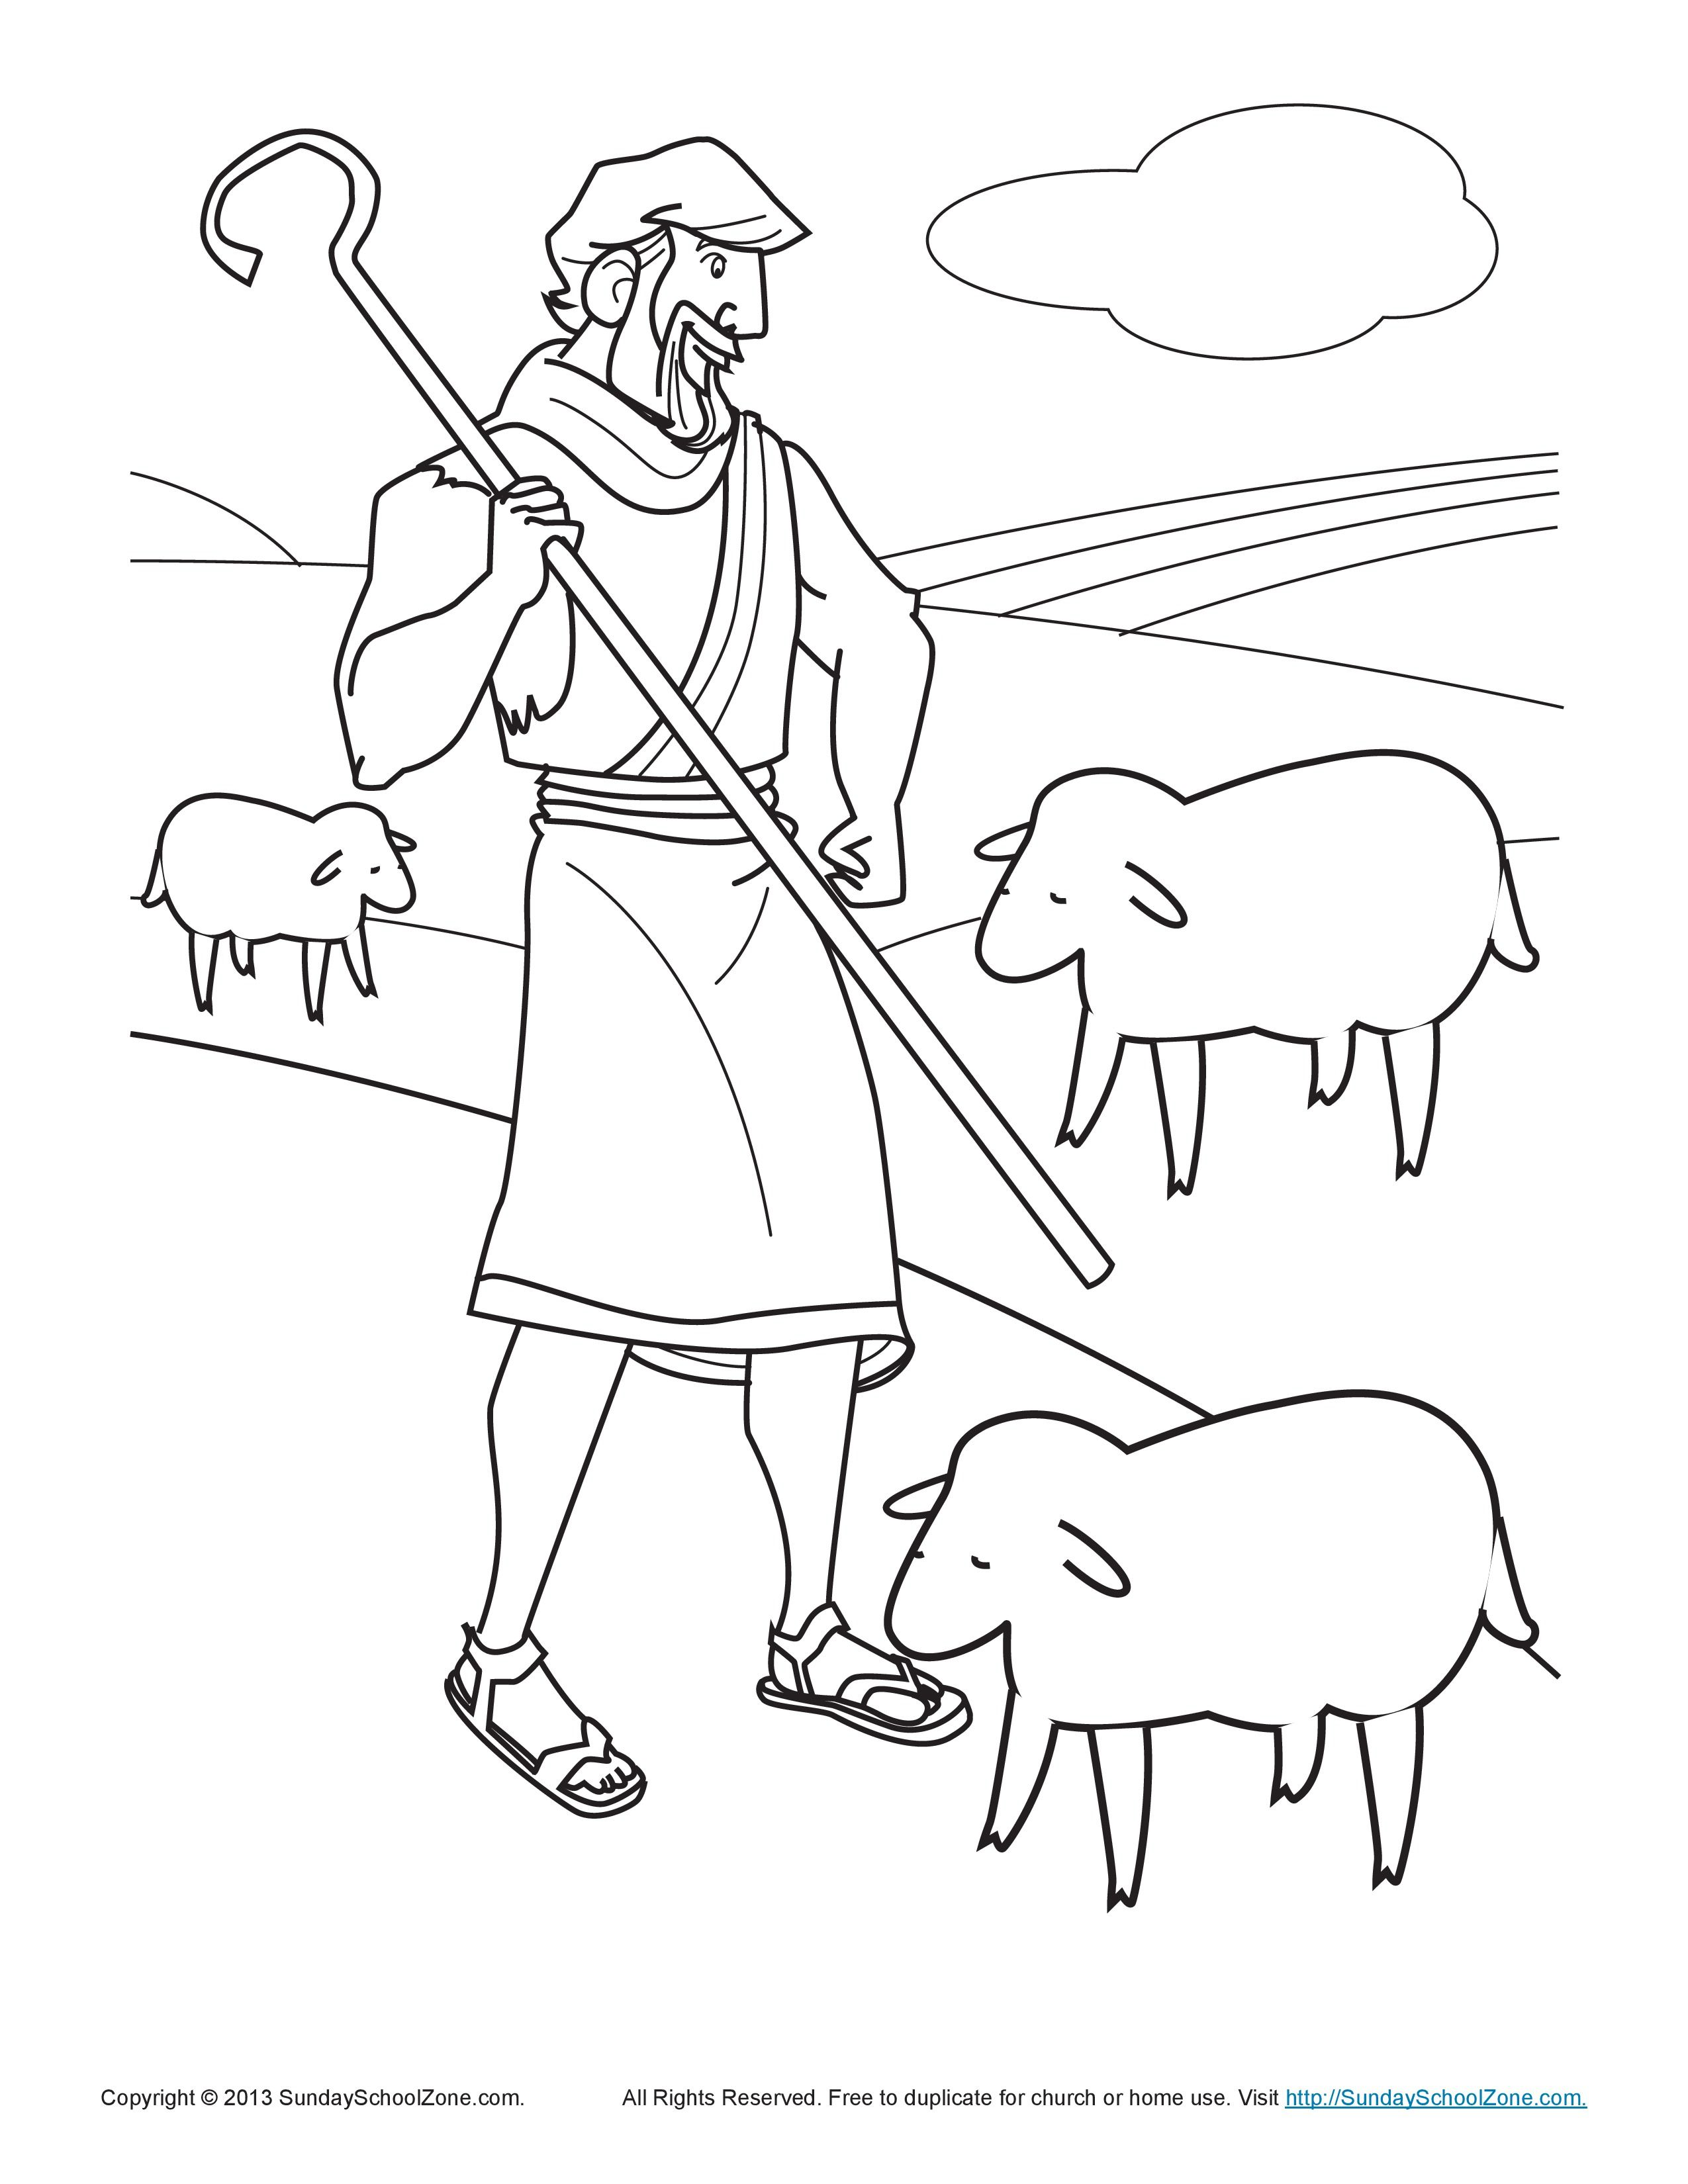 The Shepherd Tends His Flock Coloring Page The Parable Of The Lost Sheep Bible Activities